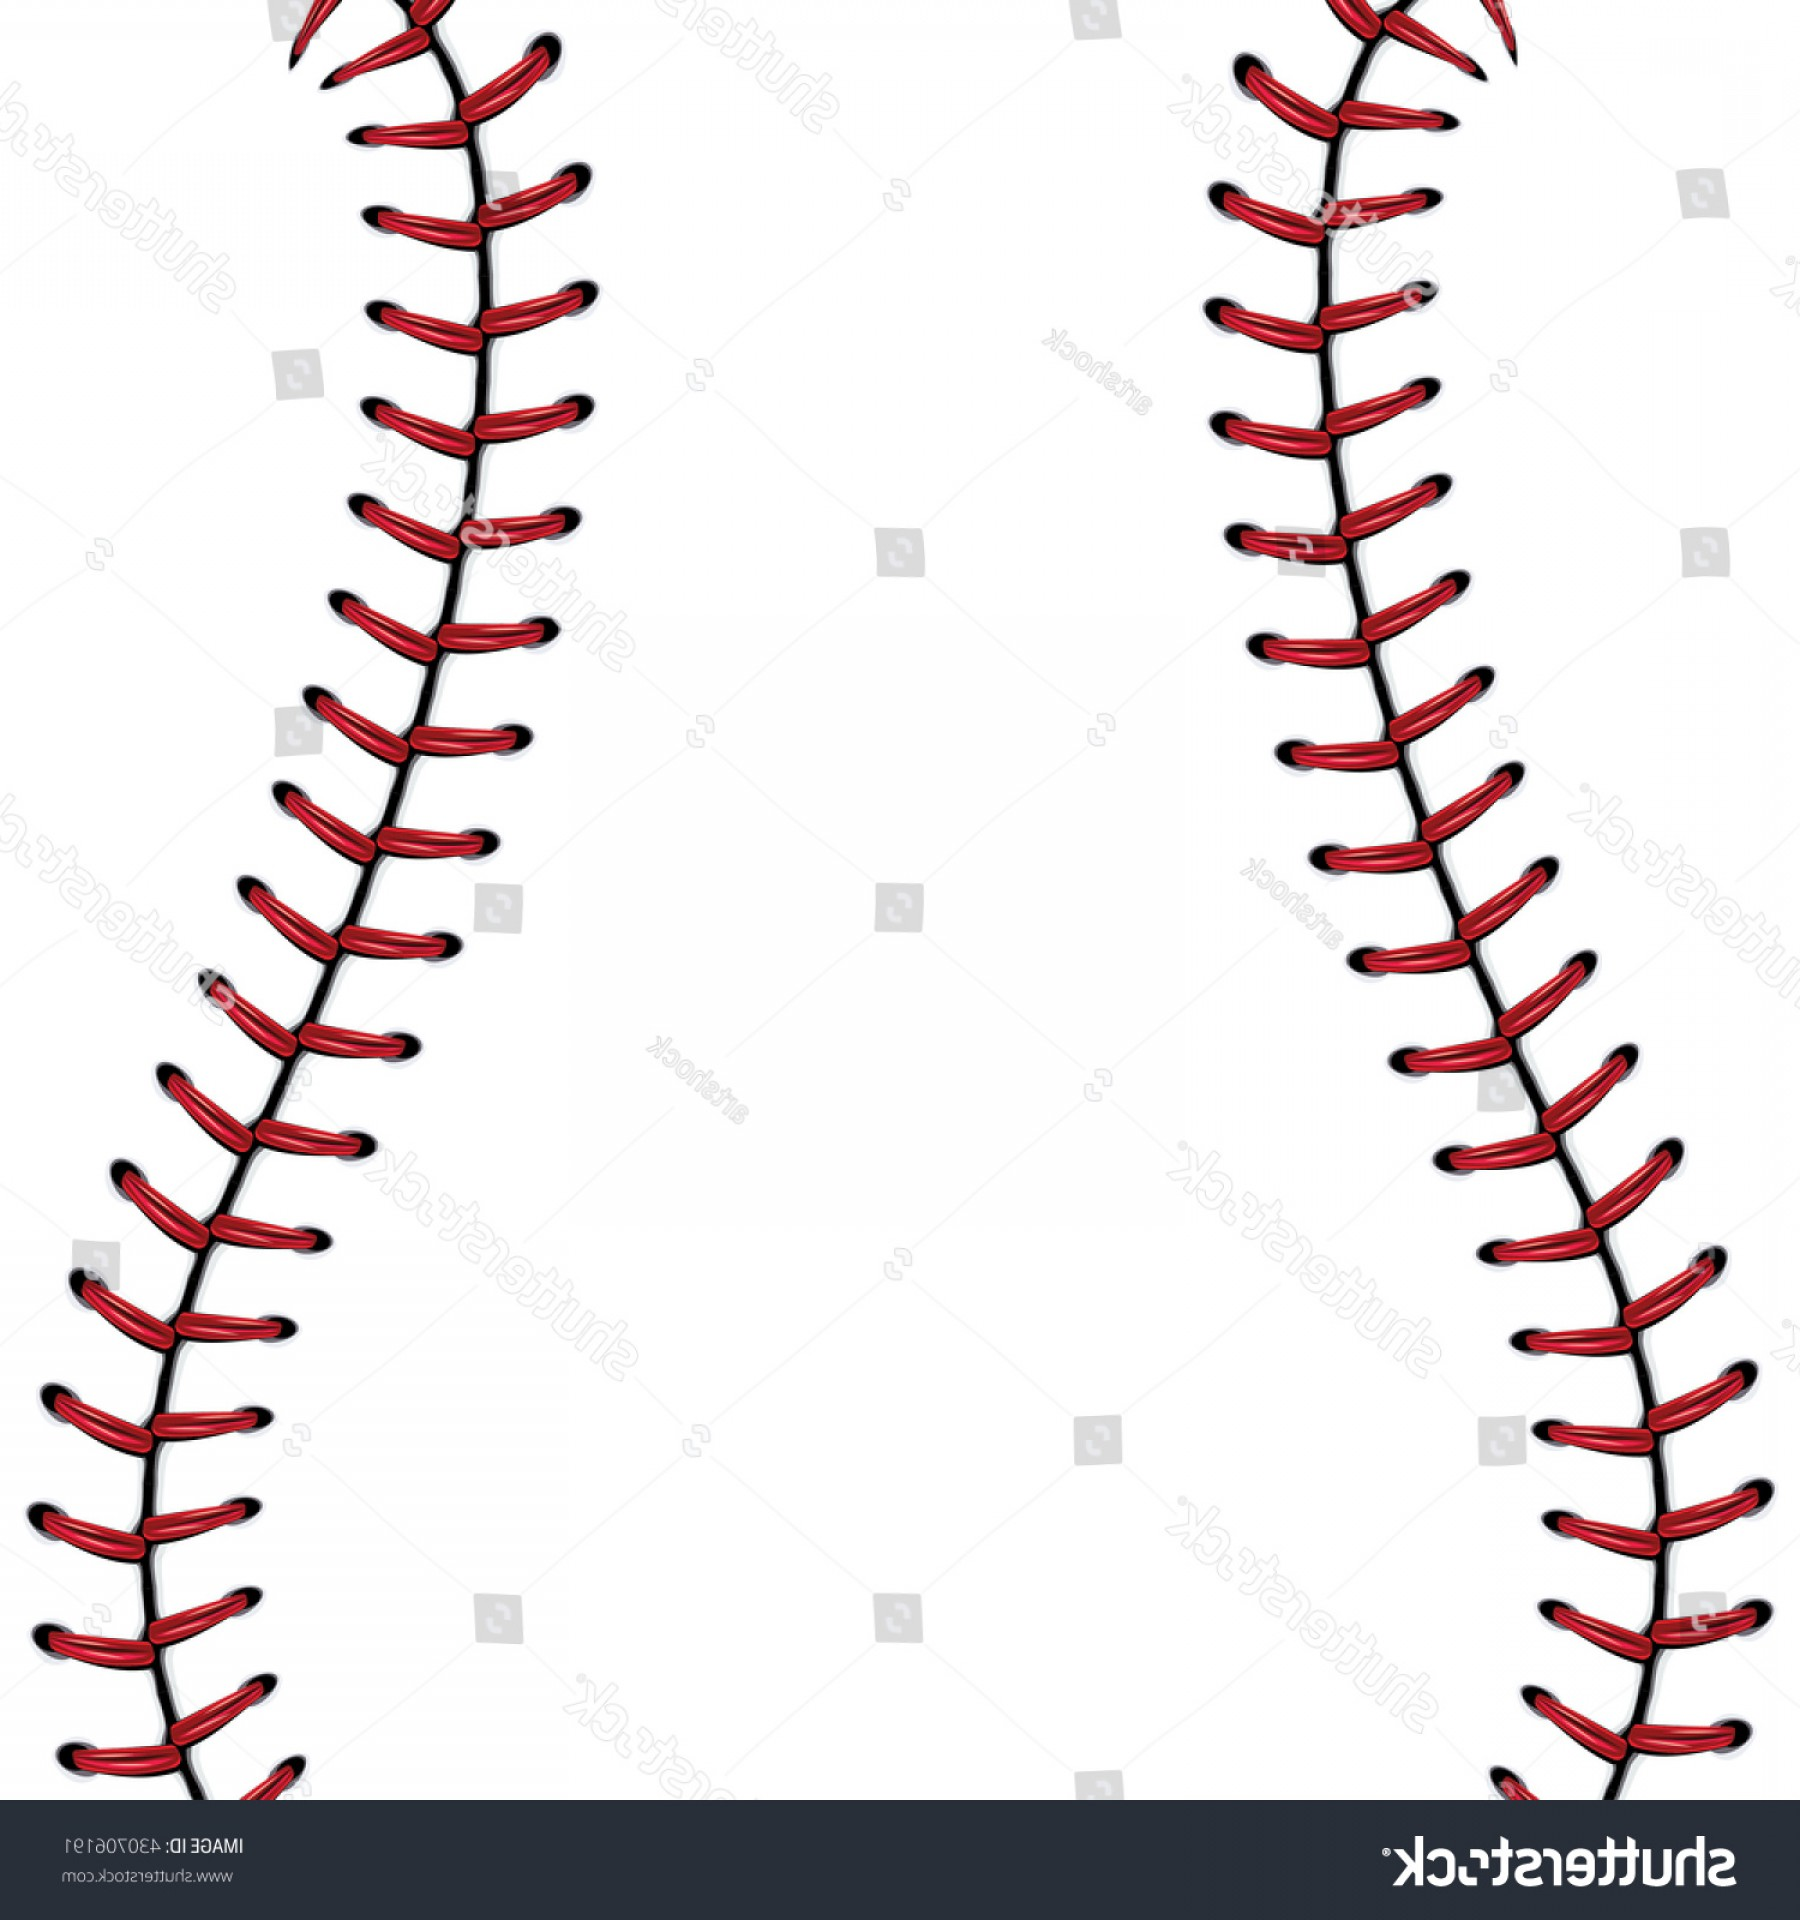 Softball Laces Vector Art B W: Softball Baseball Red Lace Over White